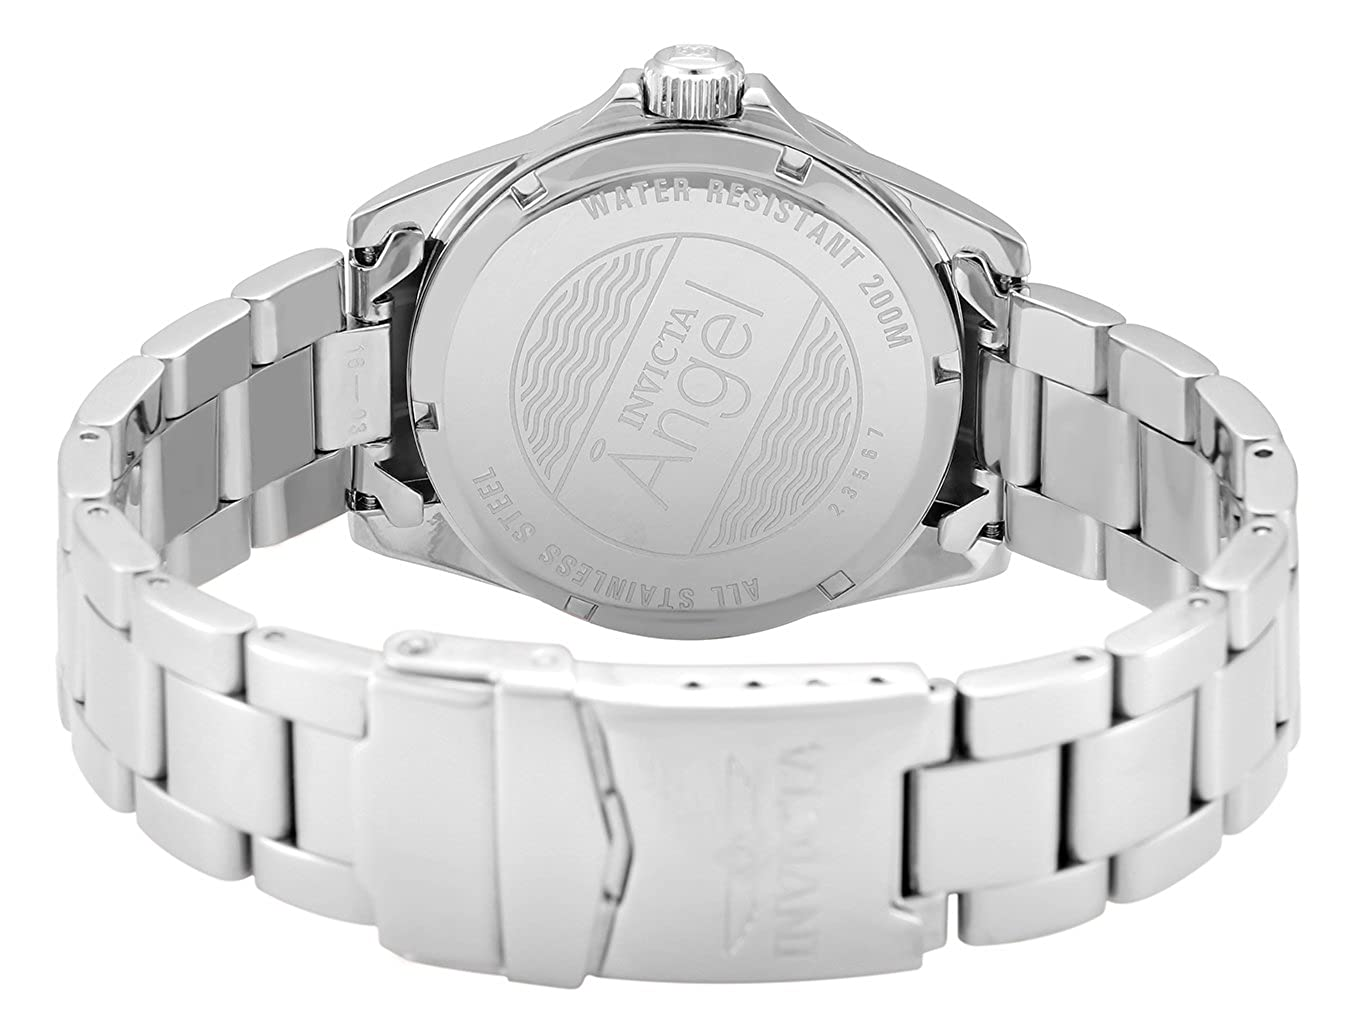 Amazon.com: Invicta Womens Angel Quartz Watch with Stainless-Steel Strap, Silver, 20 (Model: 23567: Invicta: Watches